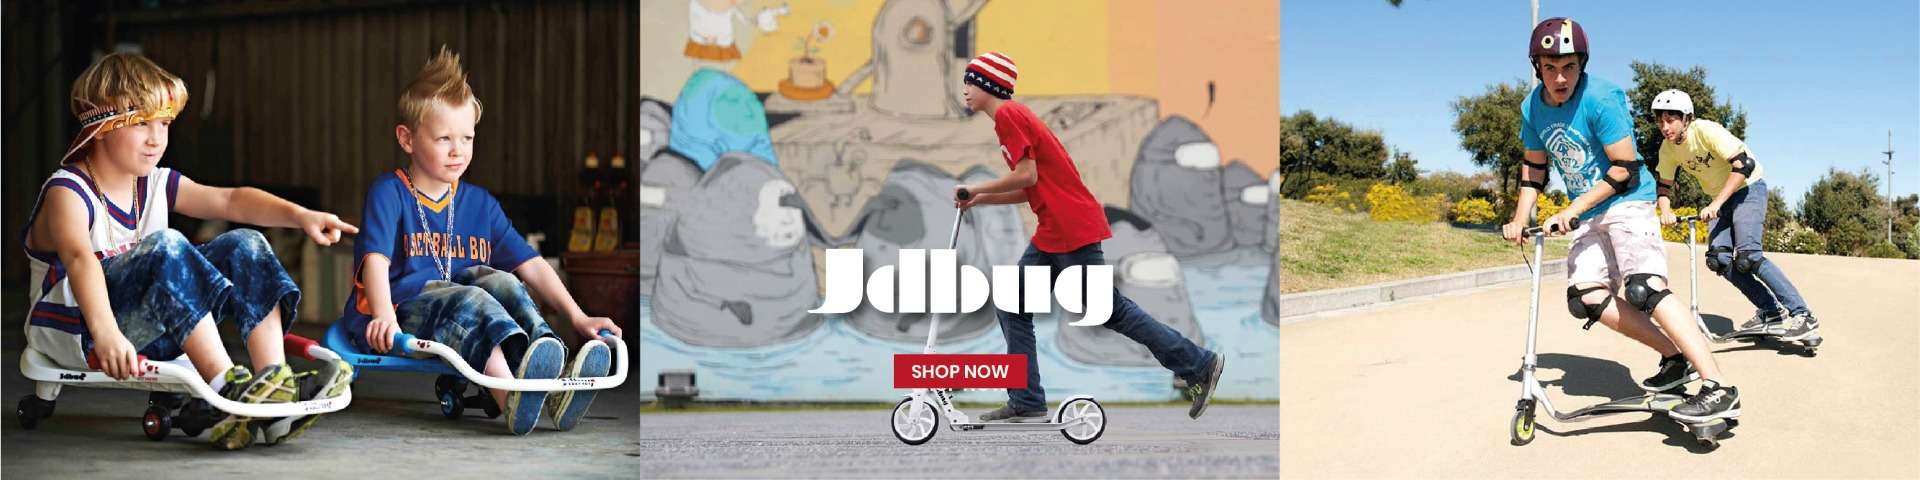 JD Bug Scooter - Color Land Toys